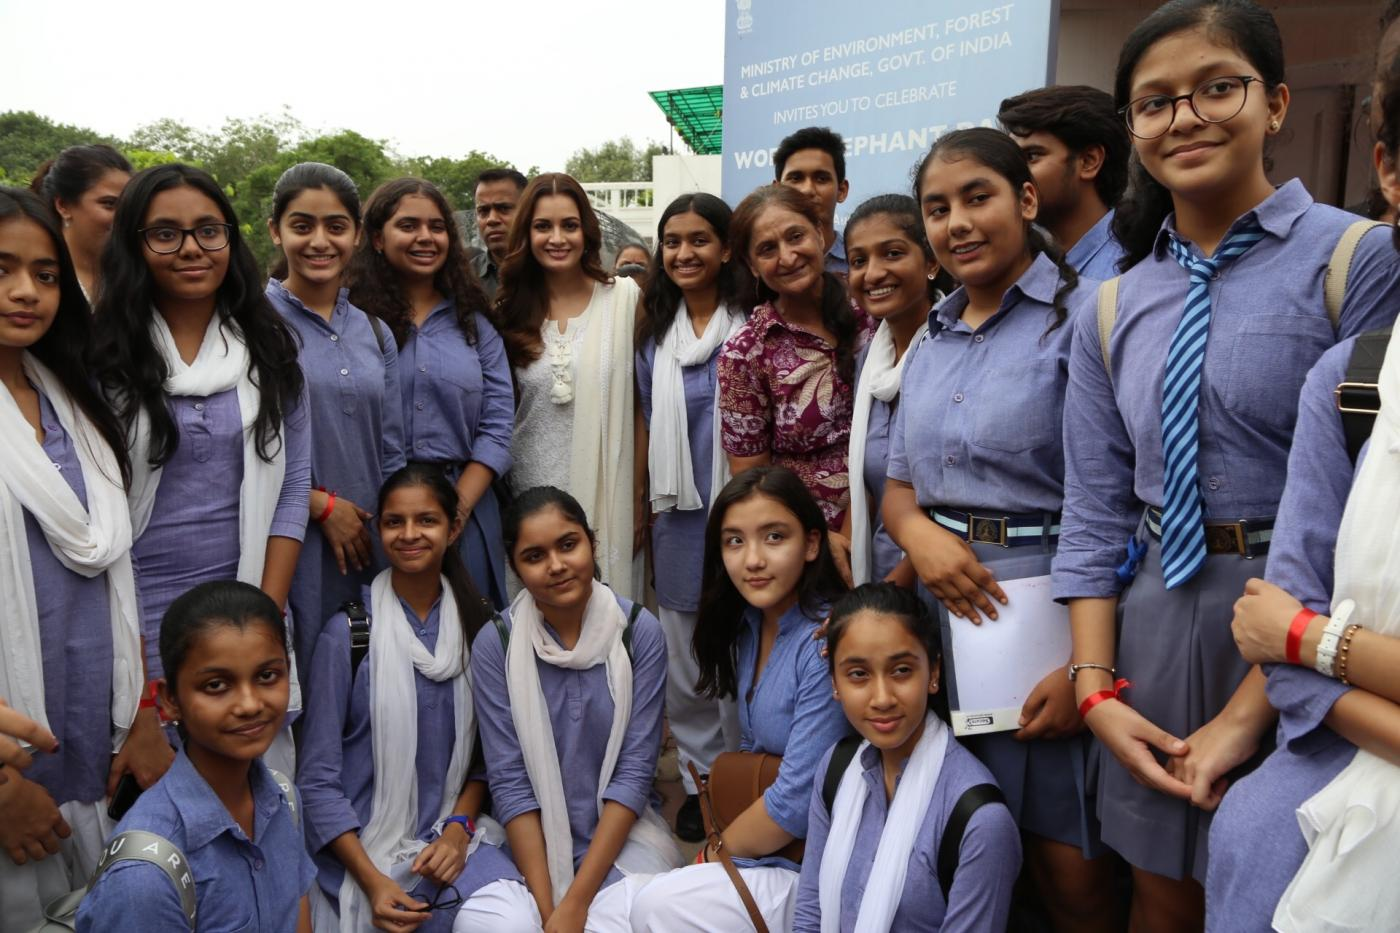 New Delhi: Actress and Wildlife Trust of India (WTI) Brand Ambassador Dia Mirza with school students at the inaugural programme of 'Gaj Mahotasav' organised on the occasion of World Elephant Day', in New Delhi on Aug 12, 2018. (Photo: Amlan Paliwal/IANS) by .